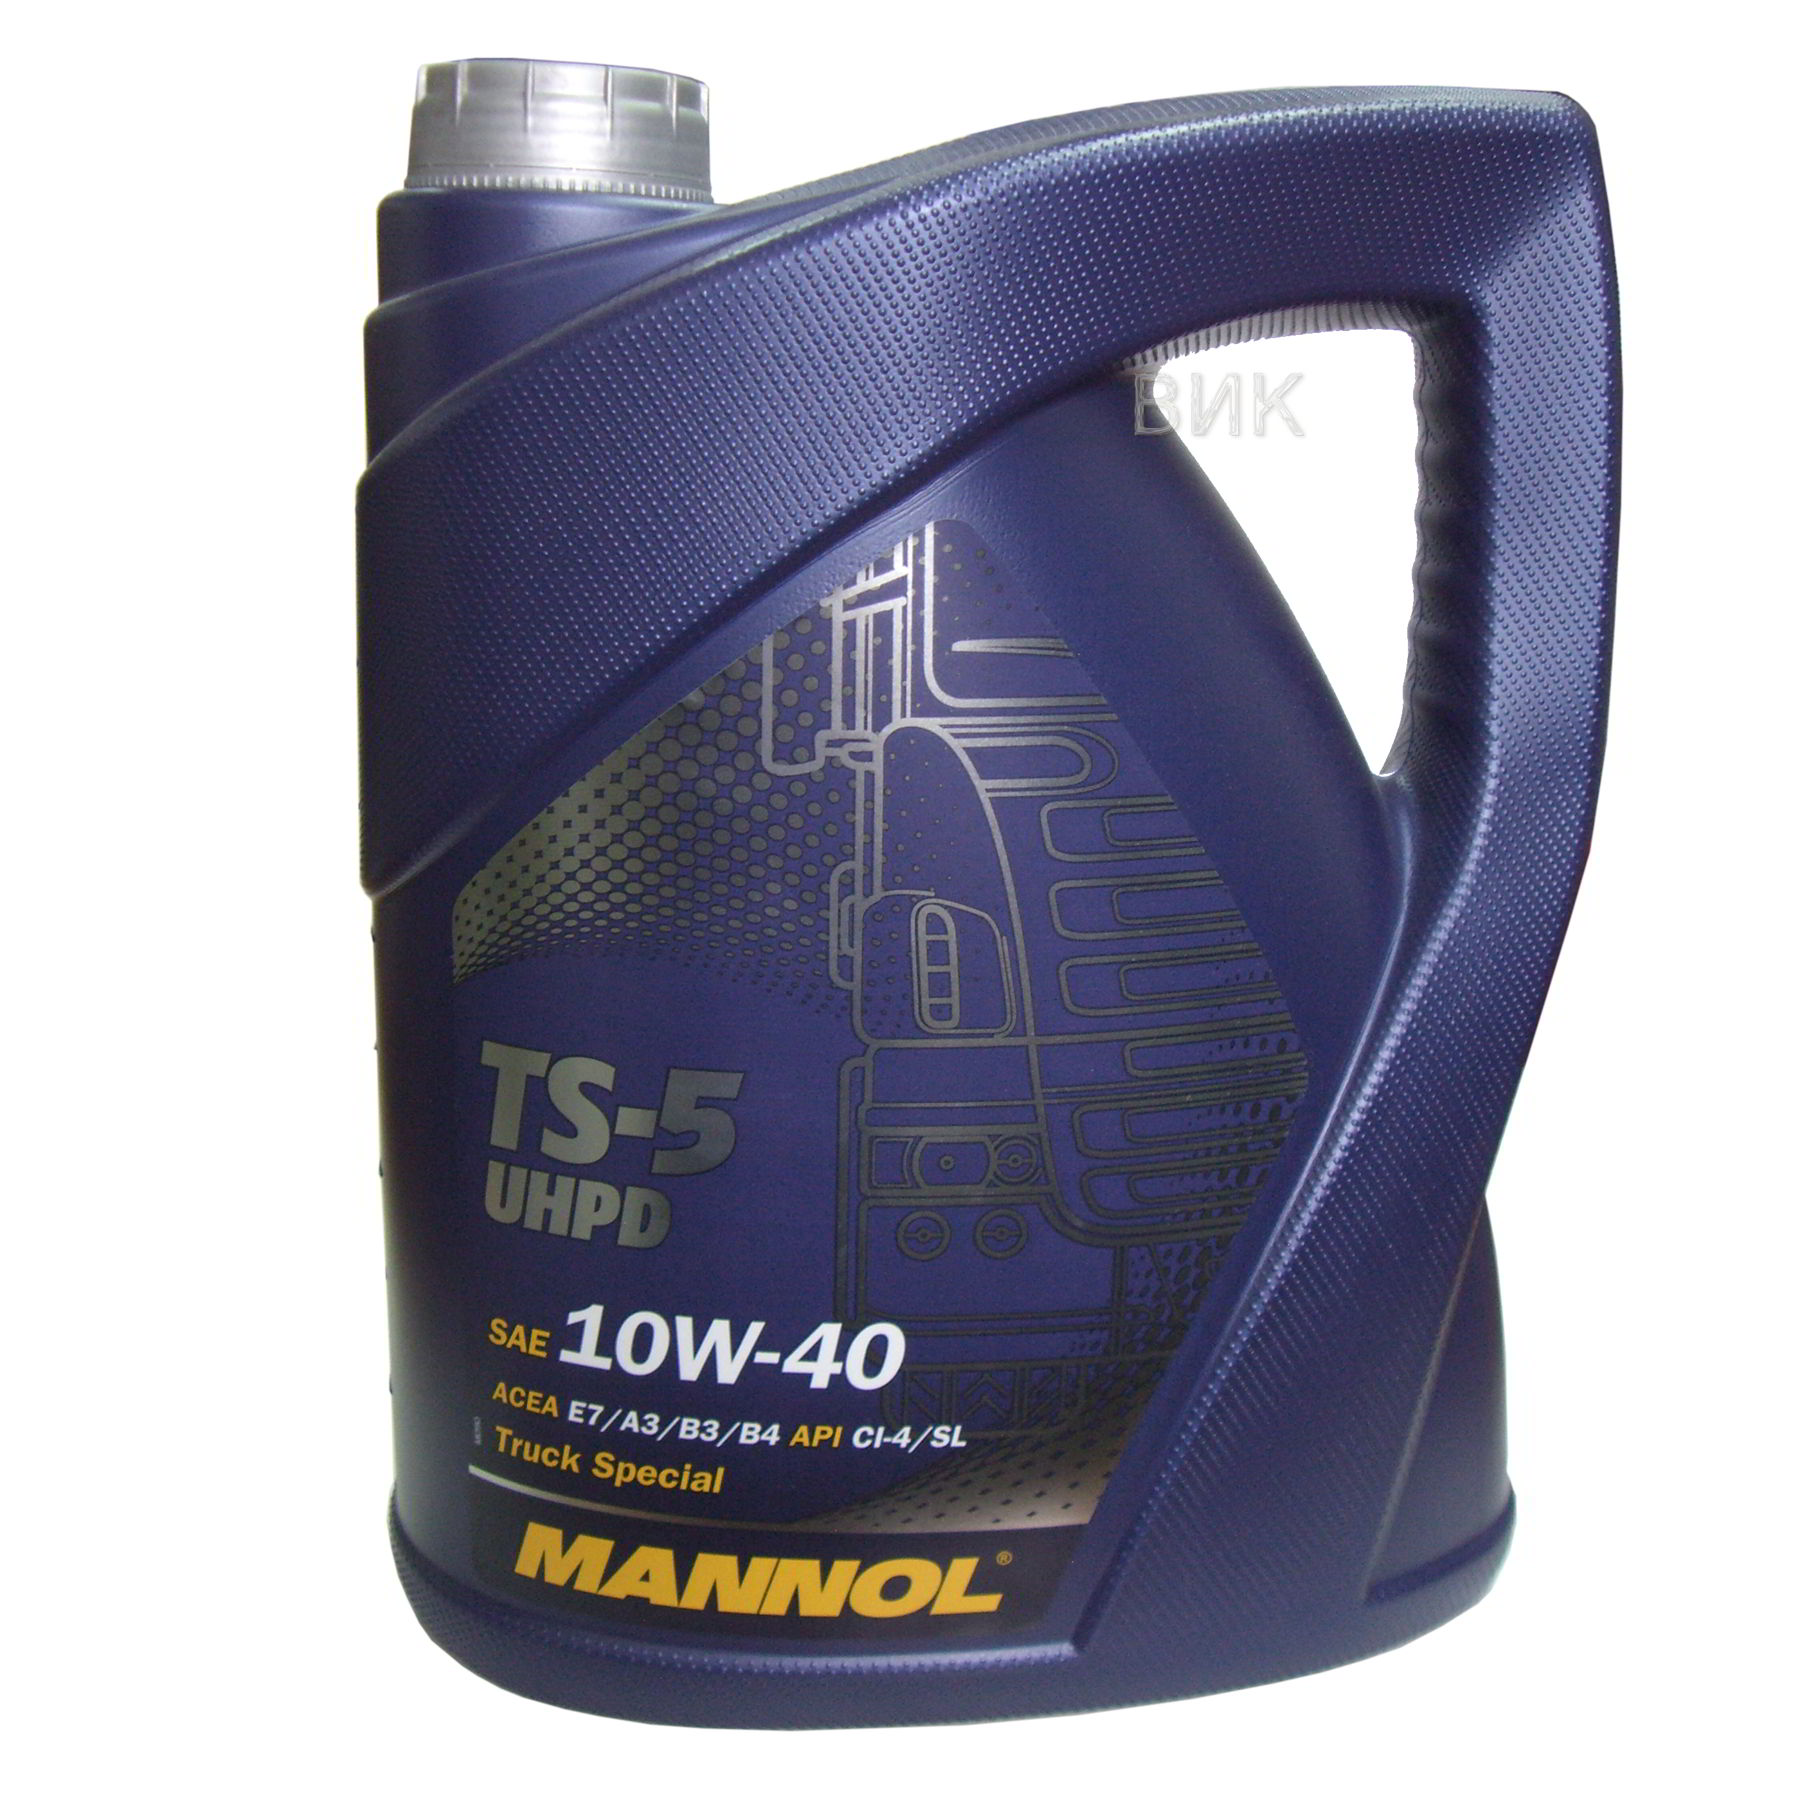 Моторное масло MANNOL TS-5 10w40 UHPD 5л